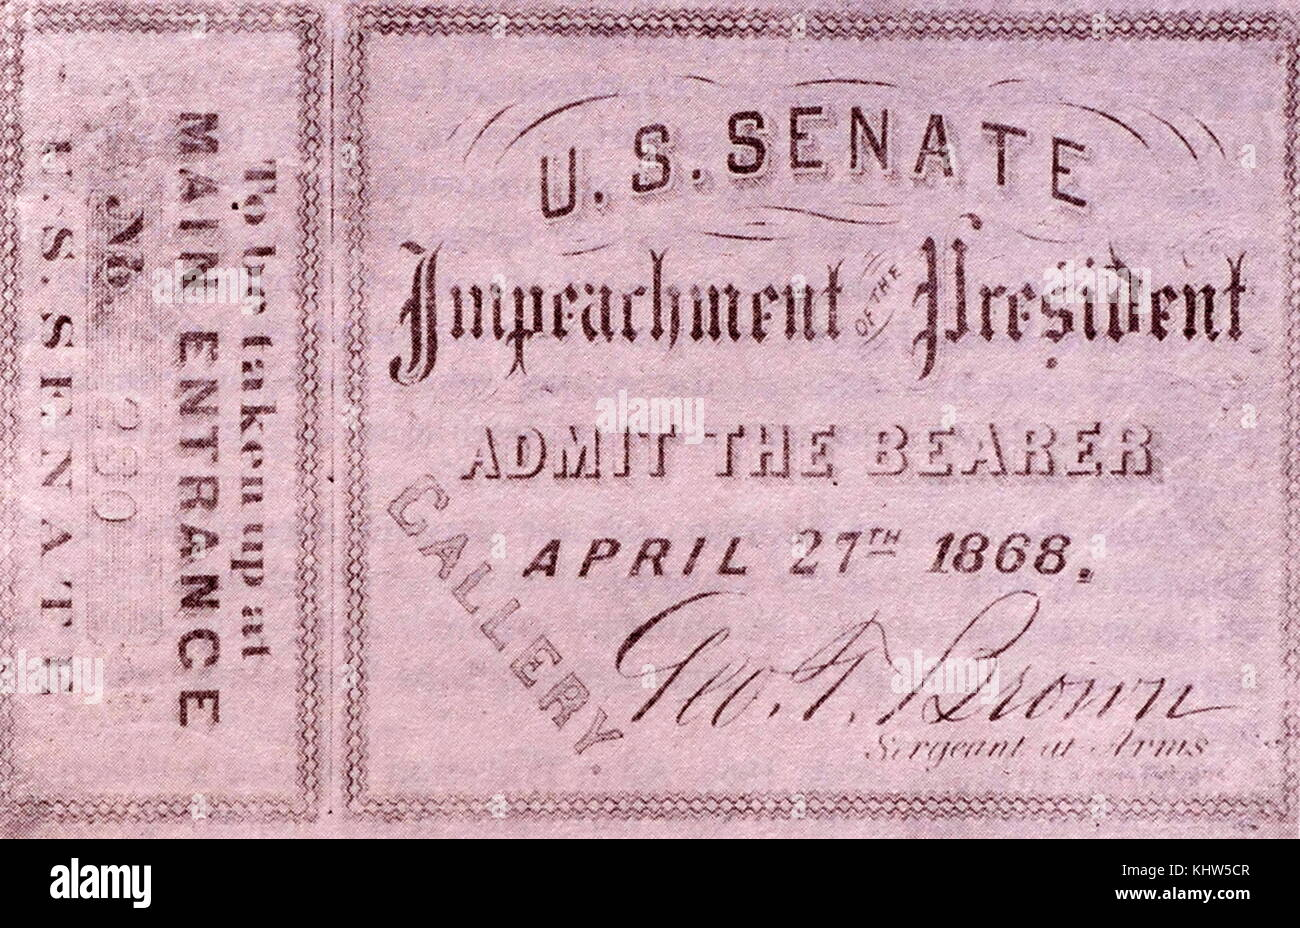 Permit to attend the impeachment proceedings of President Andrew Johnson. President Andrew Johnson (1808-1875) 17th - Stock Image